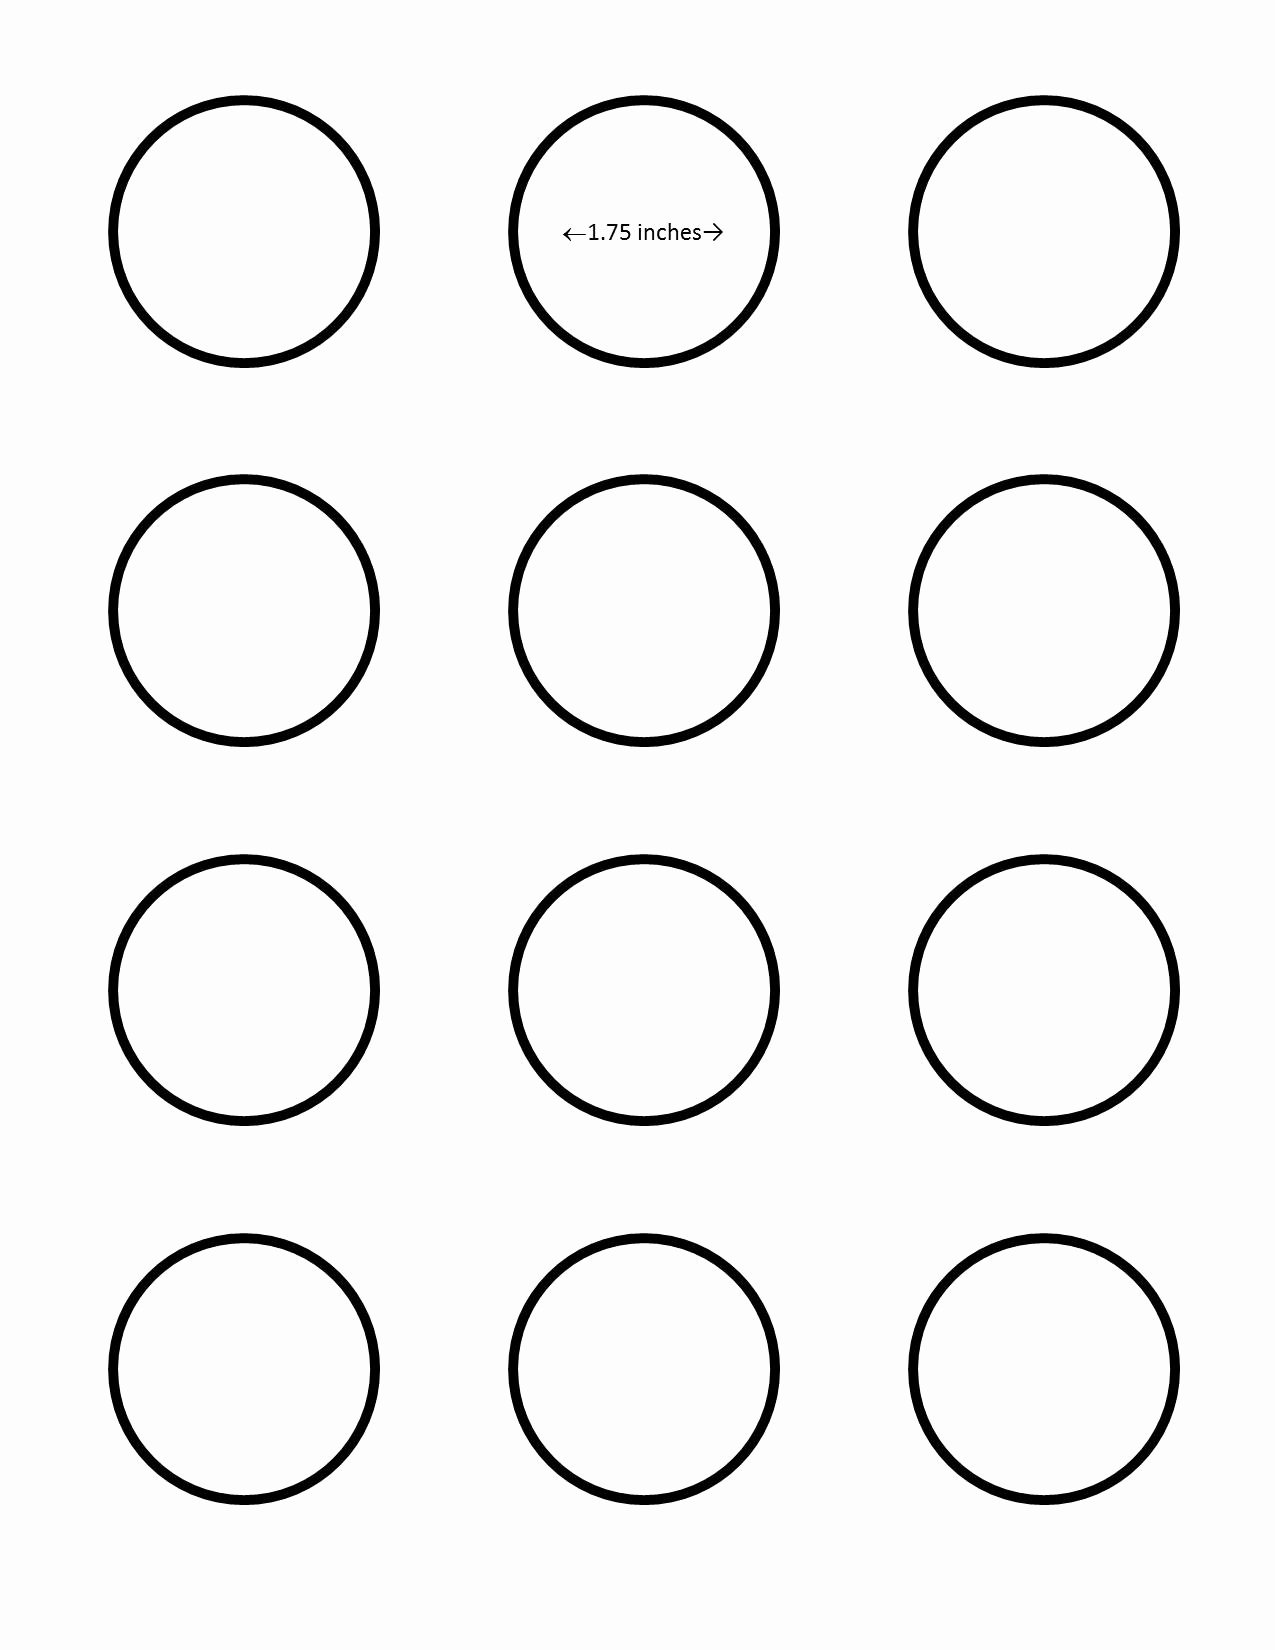 Macaron Template Printable Best Of All Sizes